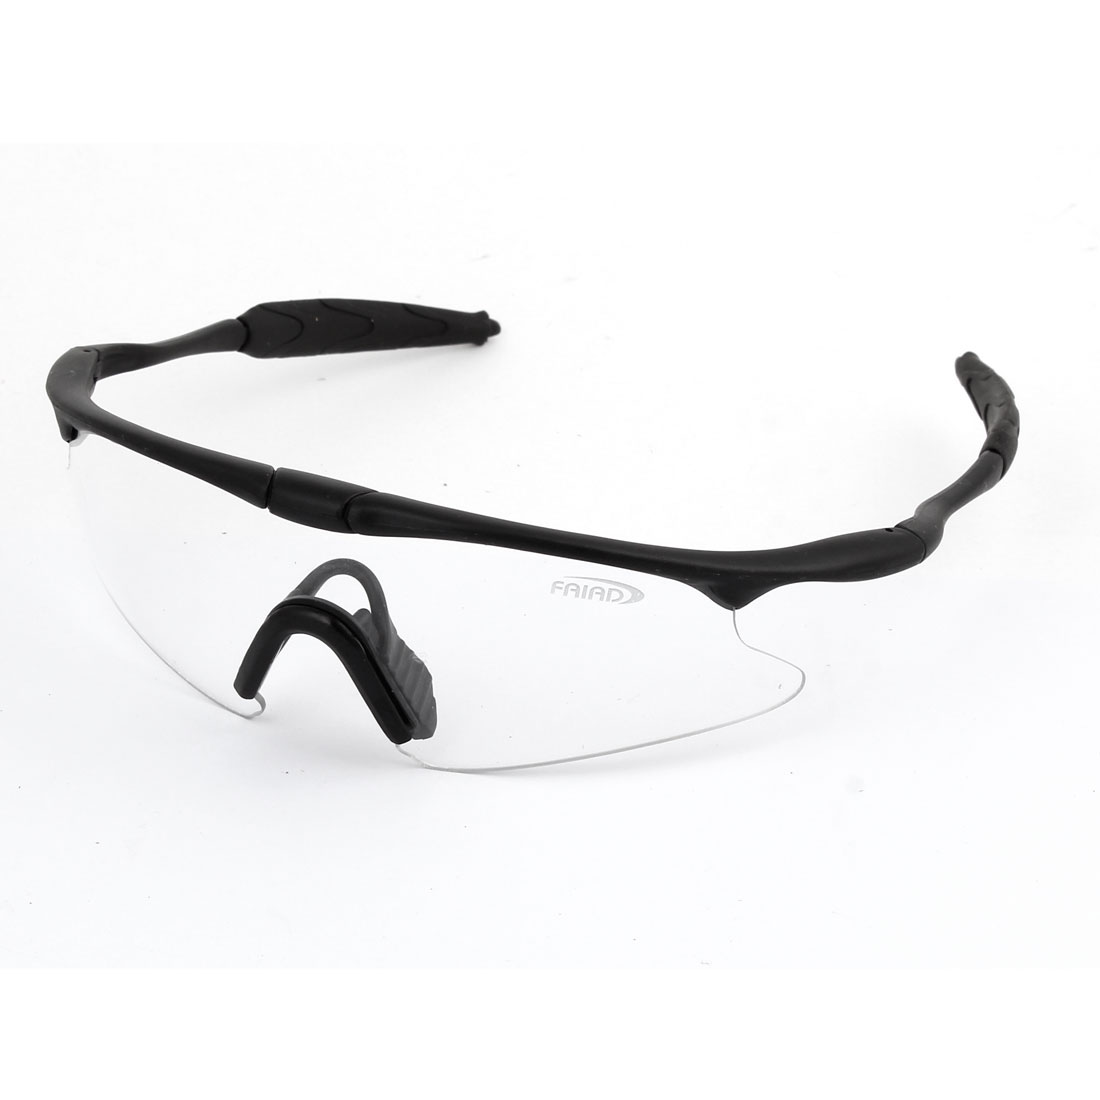 Unisex Protective Single Bridge Clear Lens Black Frame Plastic Arms Safety Eyeglasses